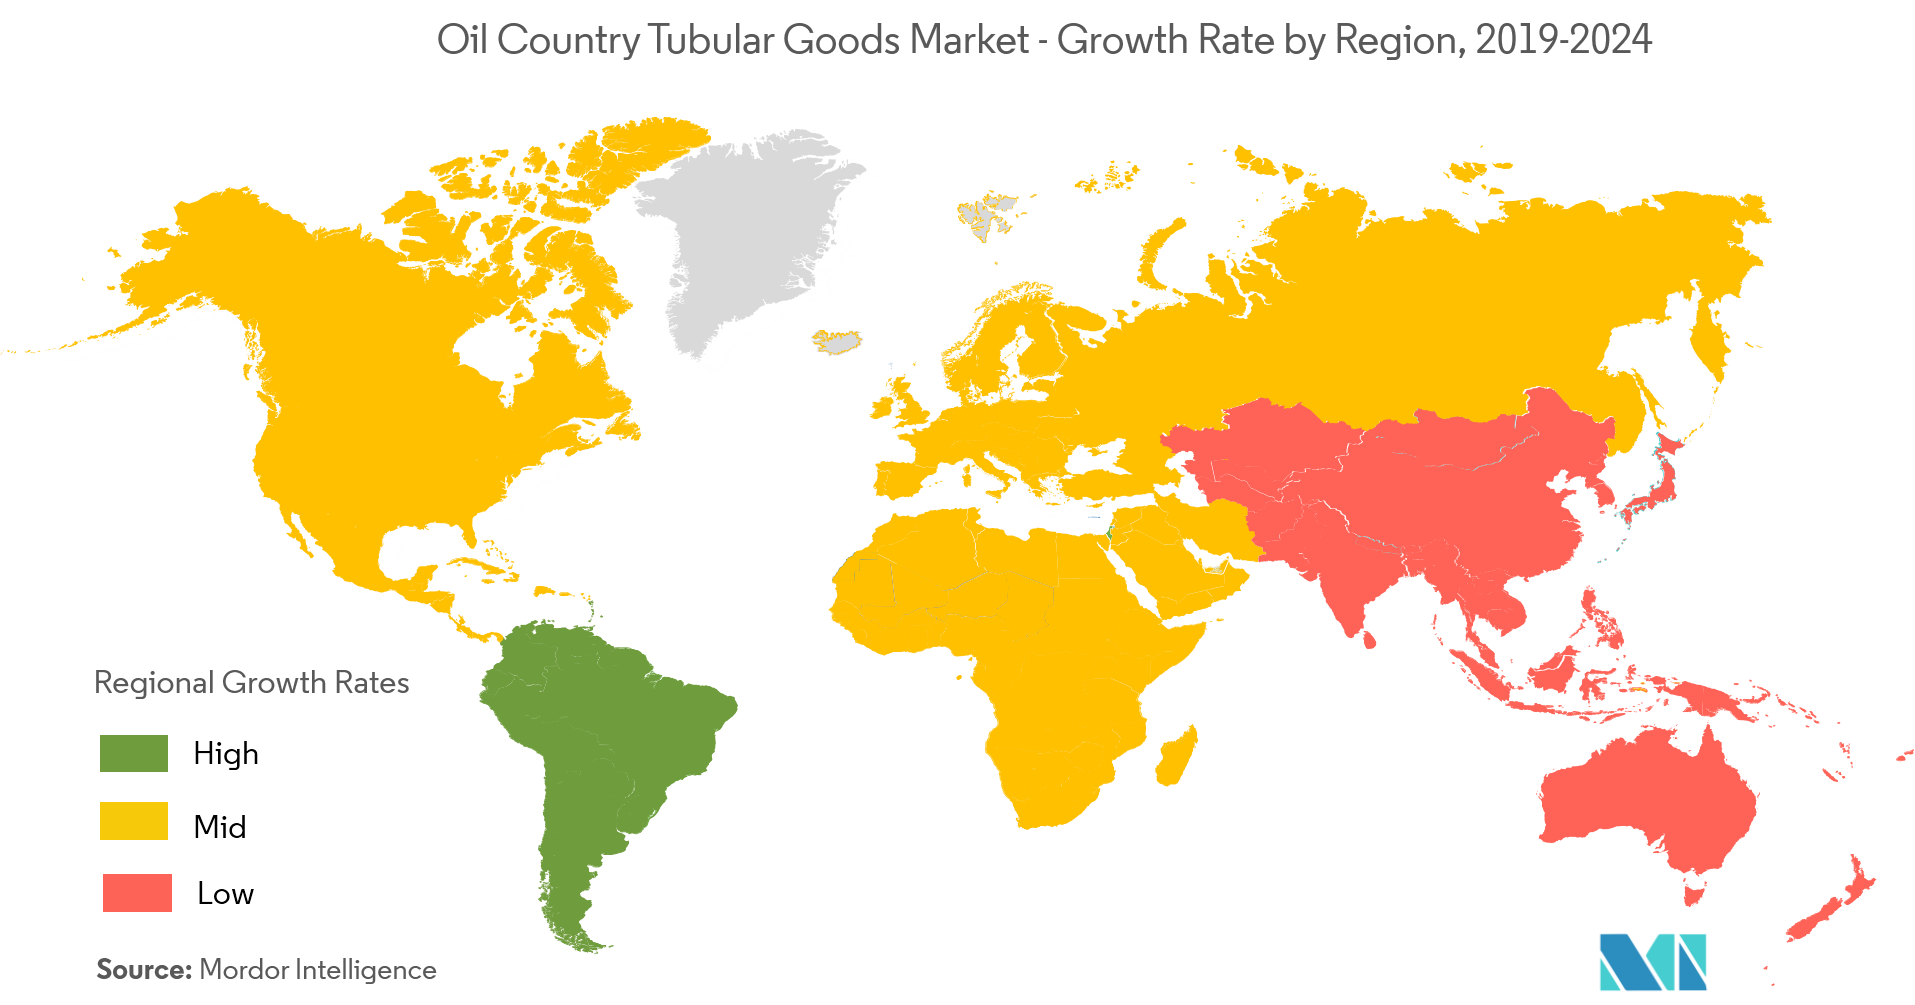 Oil Country Tubular Goods Market - Growth Rate by Region, 2019-2024